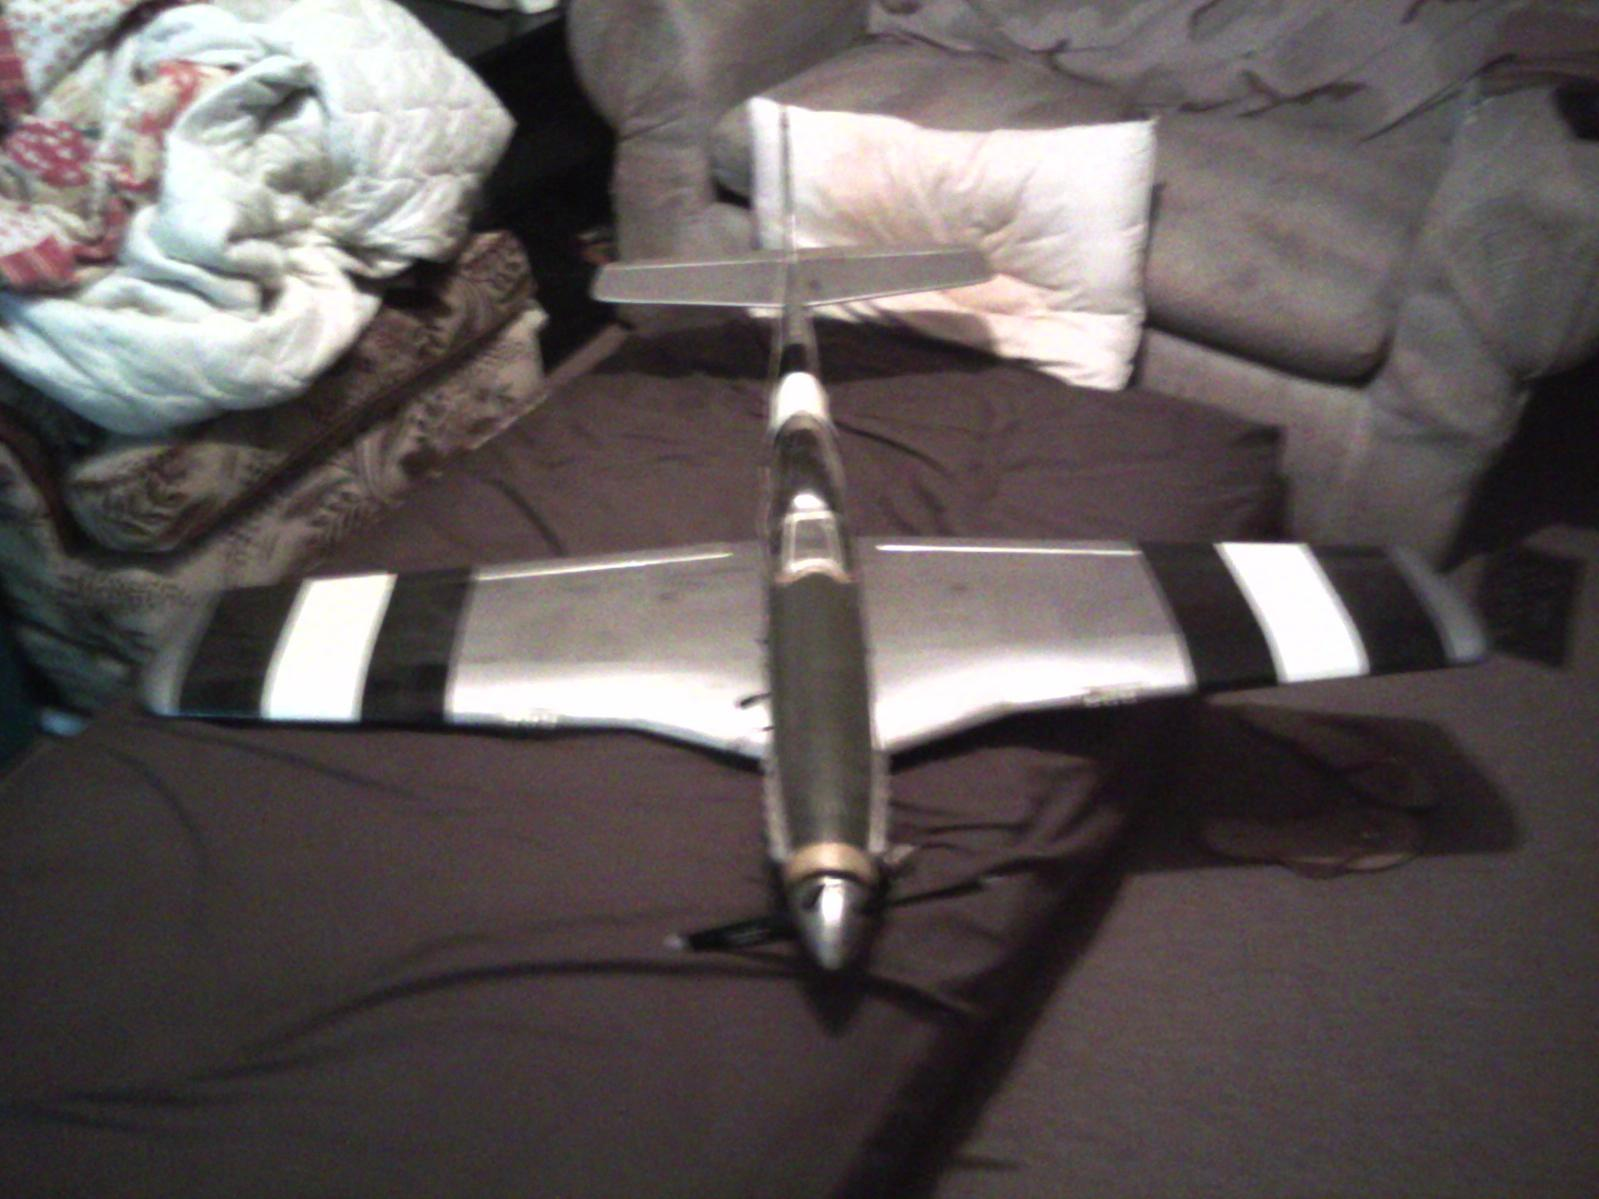 P-51 with invasion strips